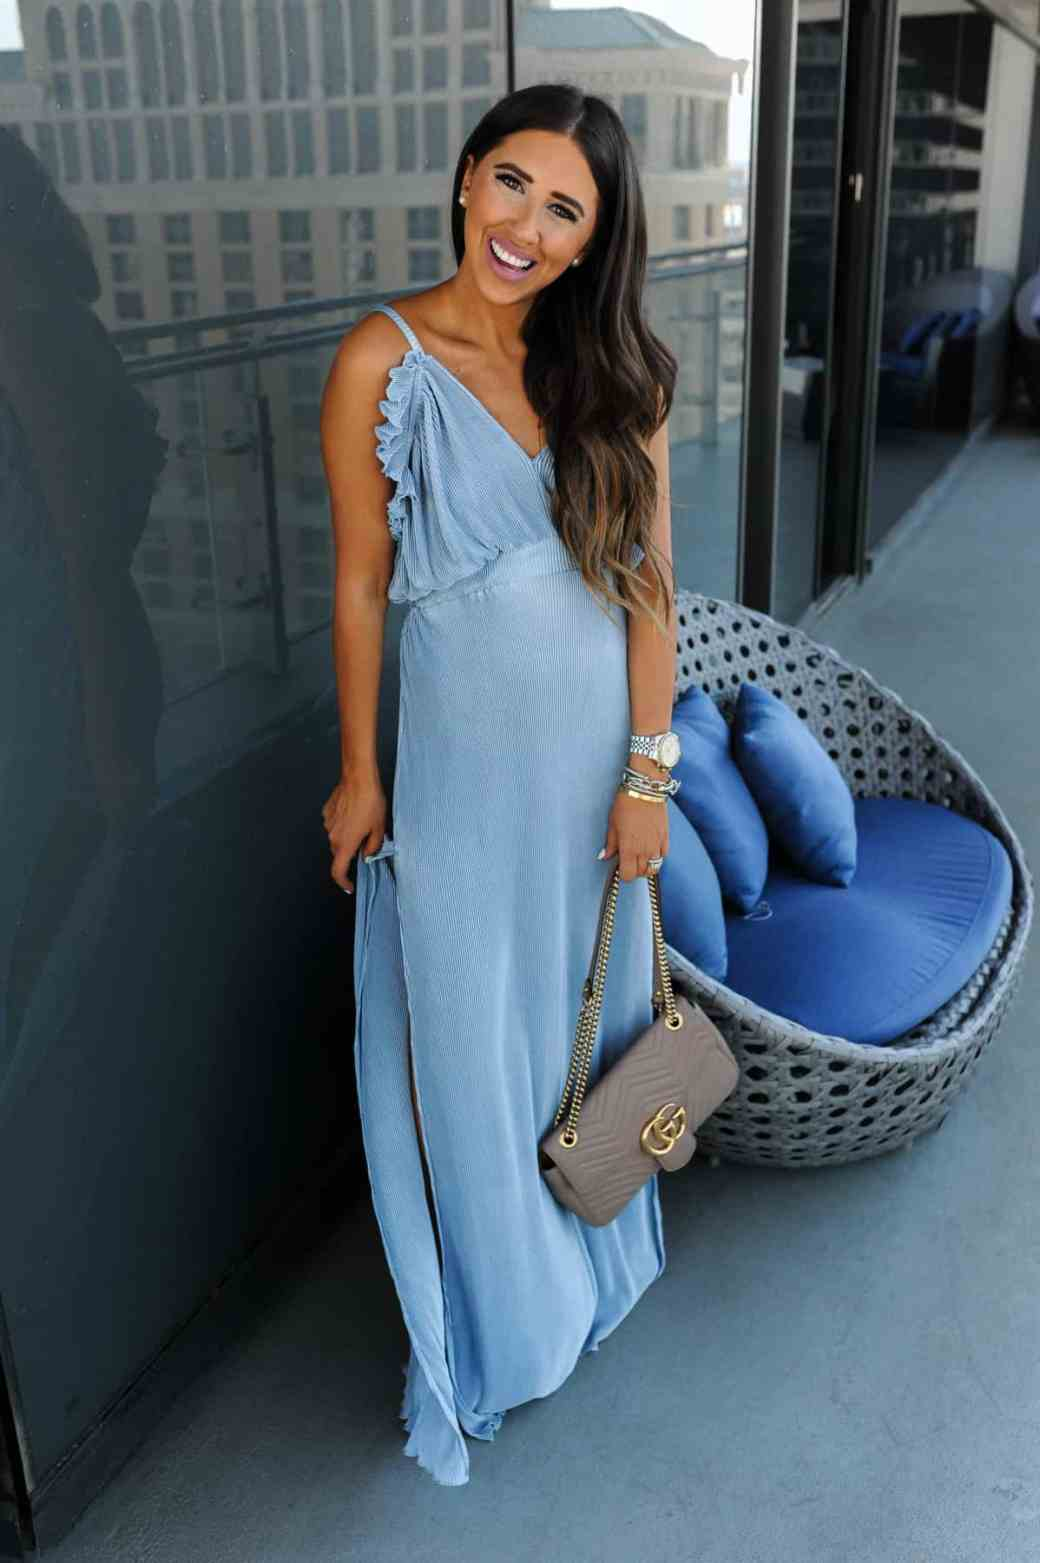 dress up buttercup 1 of 8 - Pleated Blue Maxi